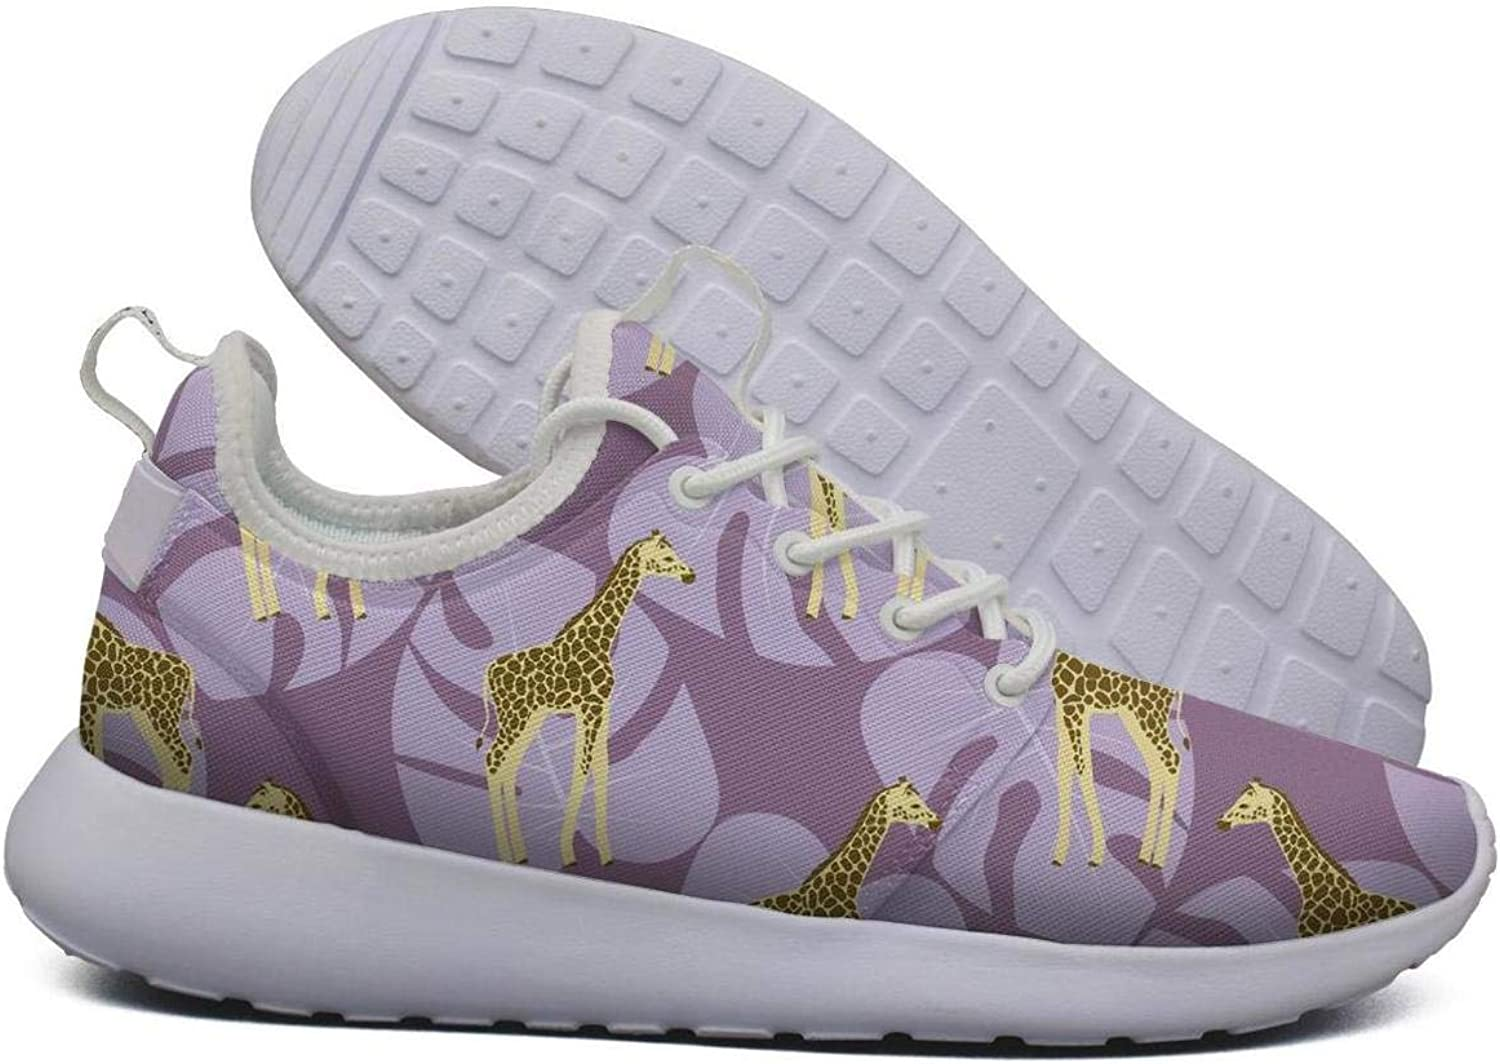 Hoohle Sports Womens Tropical Purple Giraffes with Palm Flex Mesh Roshe 2 Lightweight Cute Cross-Trainer shoes